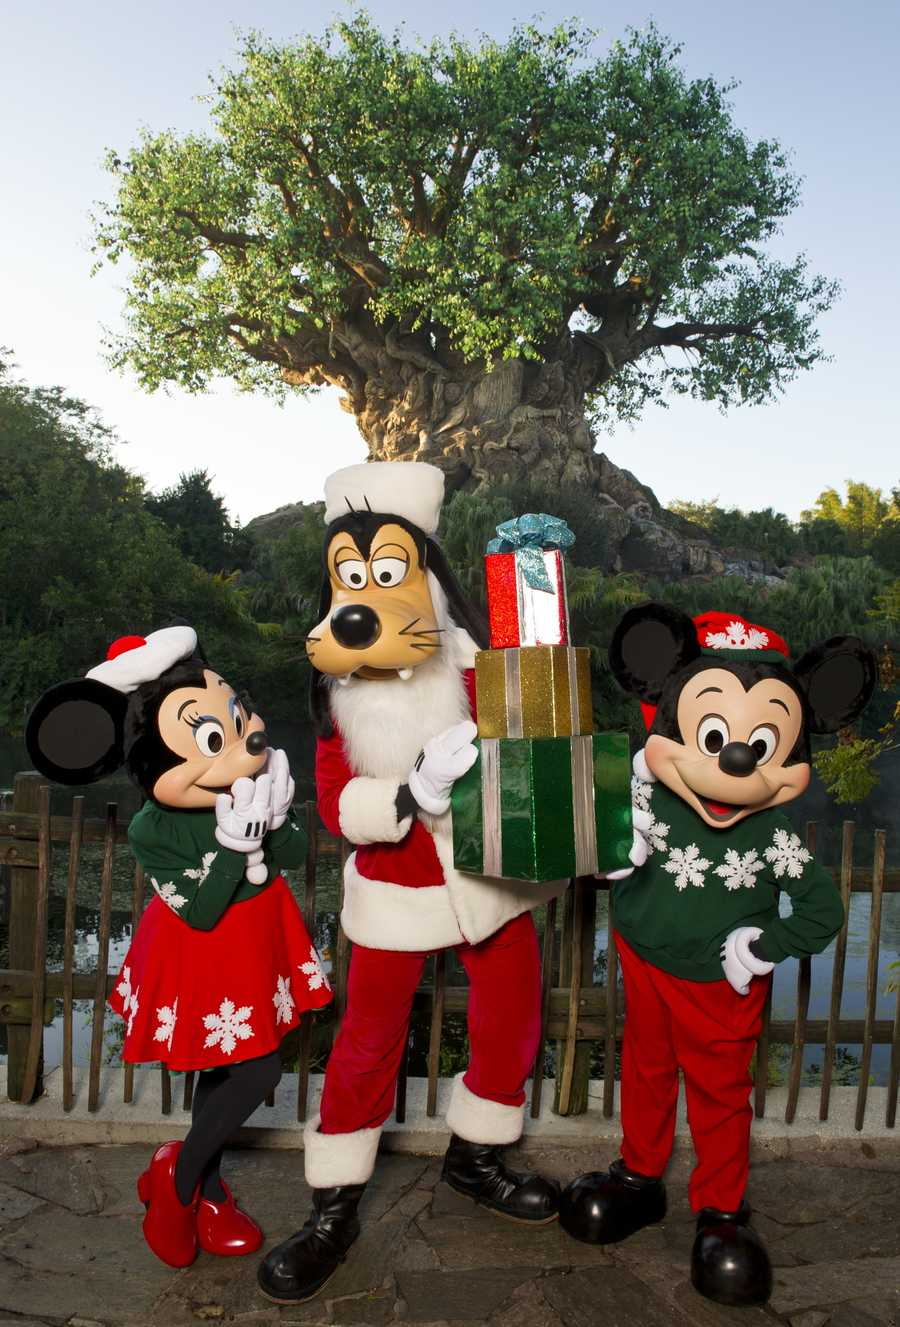 Minnie has several holiday outfits.  Here she is in her holiday sweater and skirt ensemble with Mickey and Goofy at Animal Kingdom.